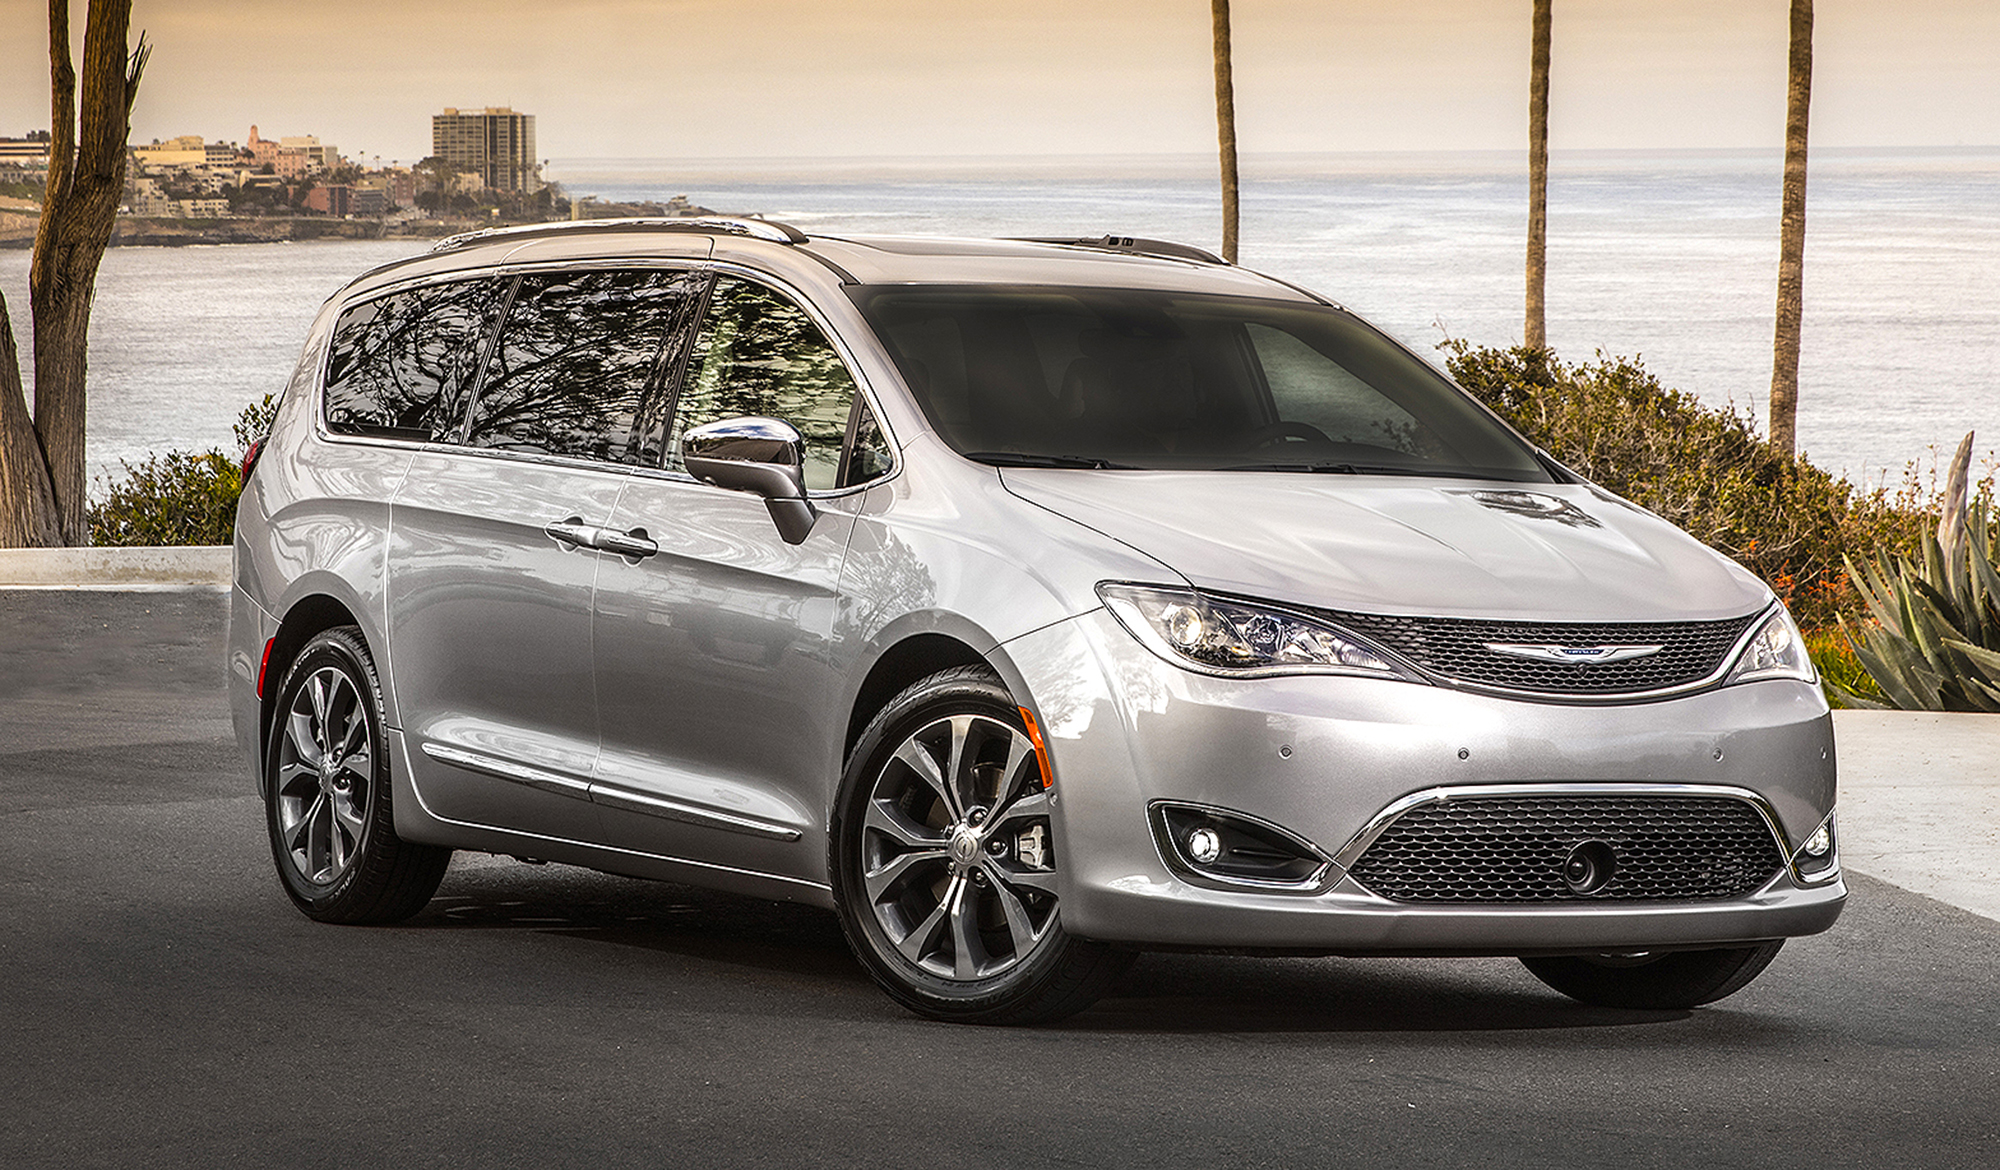 FCA under pressure to recall Chrysler Pacificas for potential stalling problem